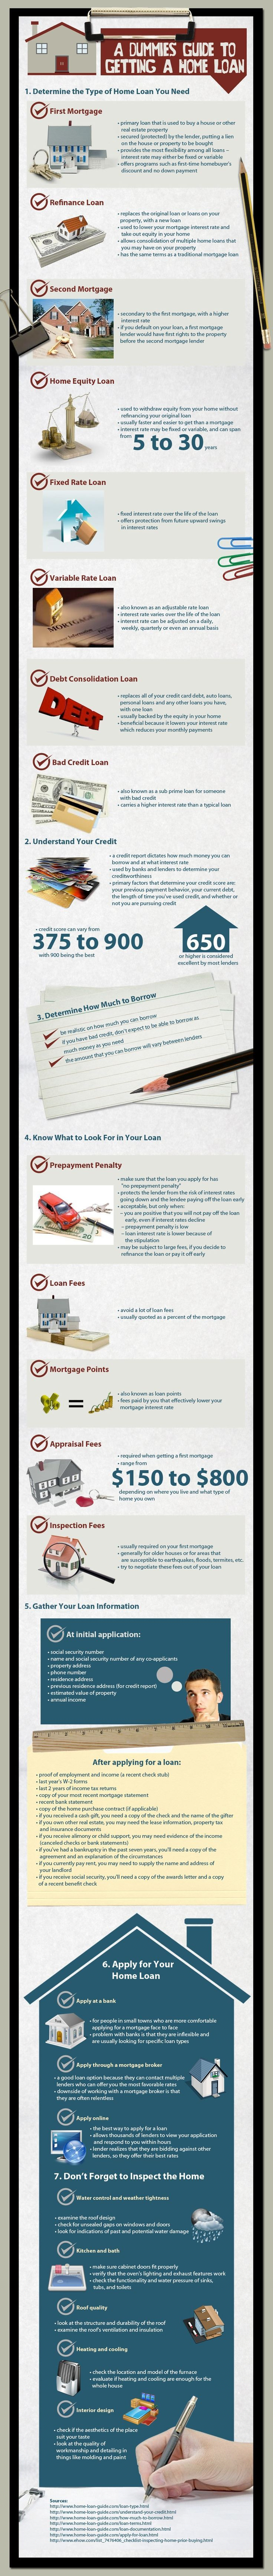 unique Home equity loan rates ideas on Pinterest